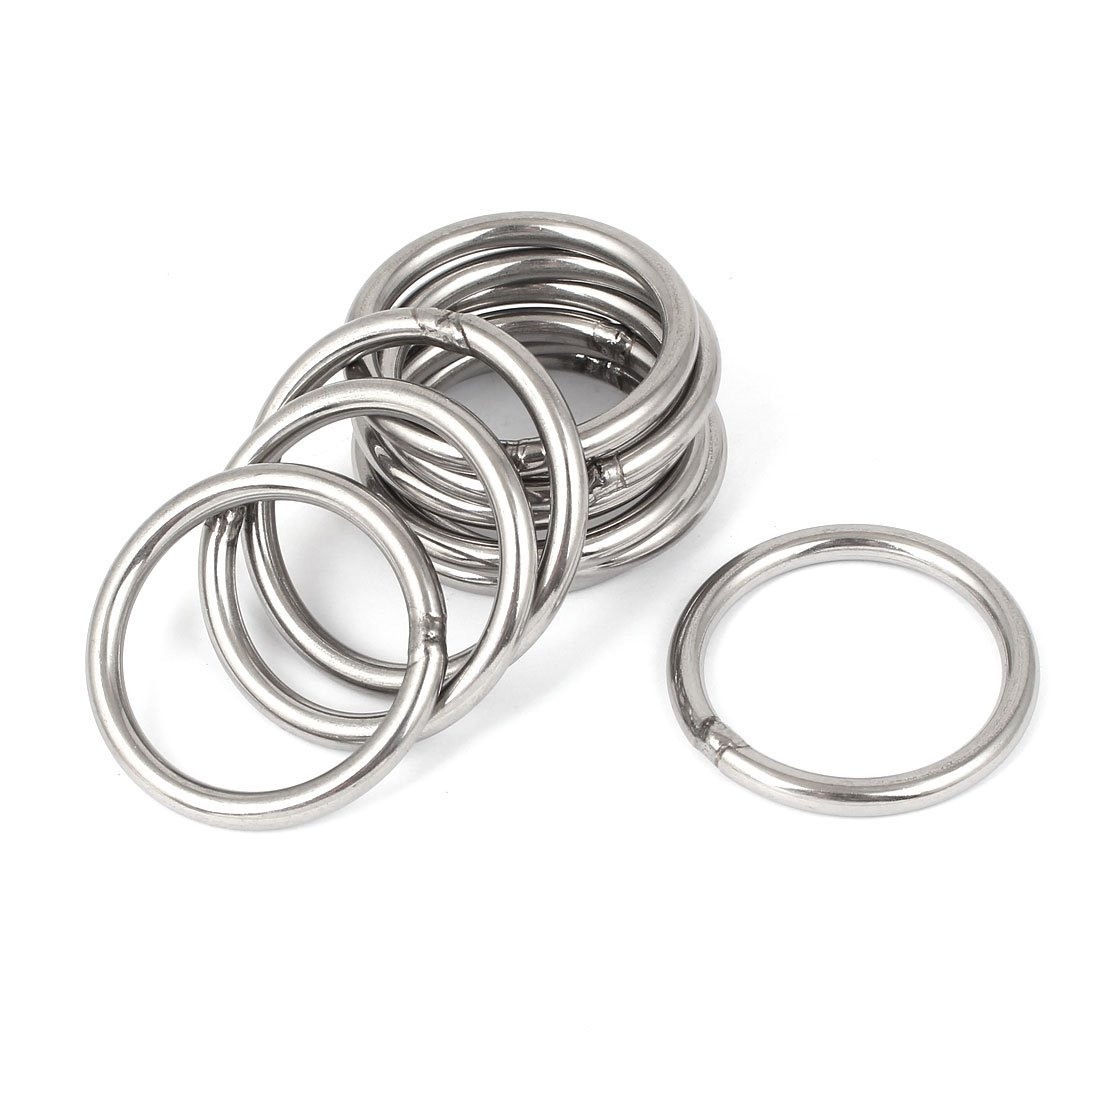 LIXF <font><b>M5</b></font> x <font><b>50mm</b></font> 304 Stainless Steel Strapping Welded Round O Rings 10 Pcs image